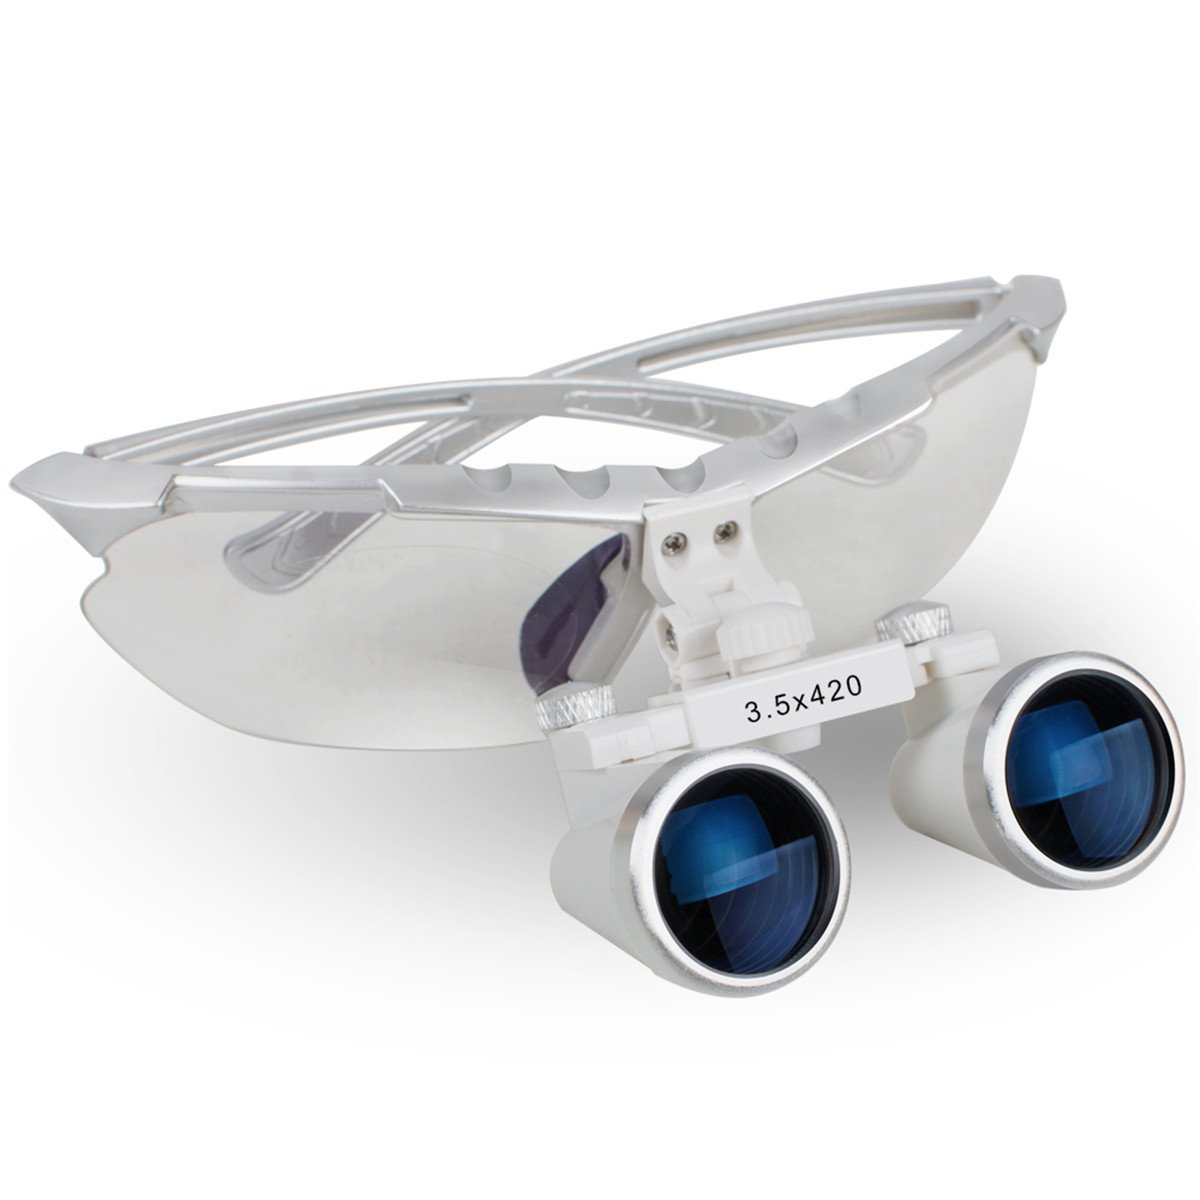 Angelwill Dental Binocular Loupes Surgical Optical Magnifying Glass Medical Magnification Loupes 3.5X 420mm Silver